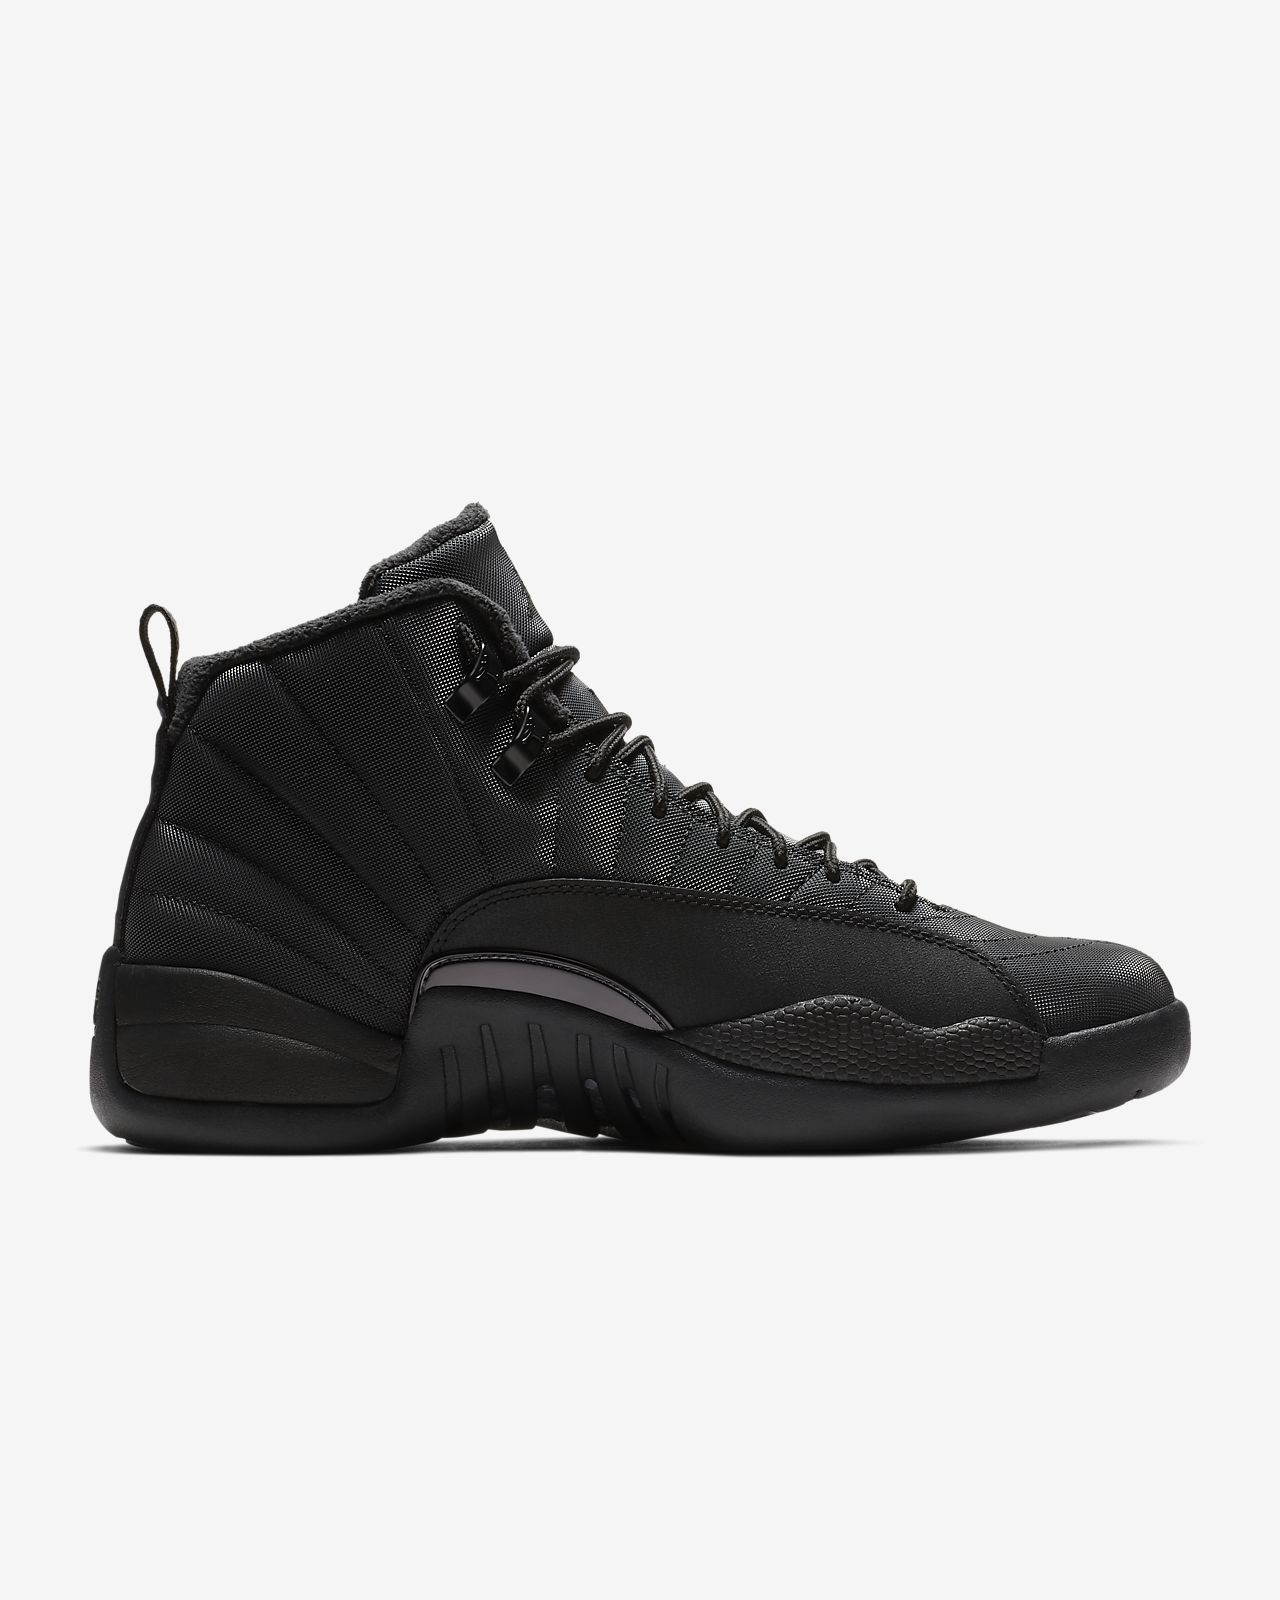 5c941ecdc8aa Air Jordan 12 Retro Winter Men s Shoe. Nike.com